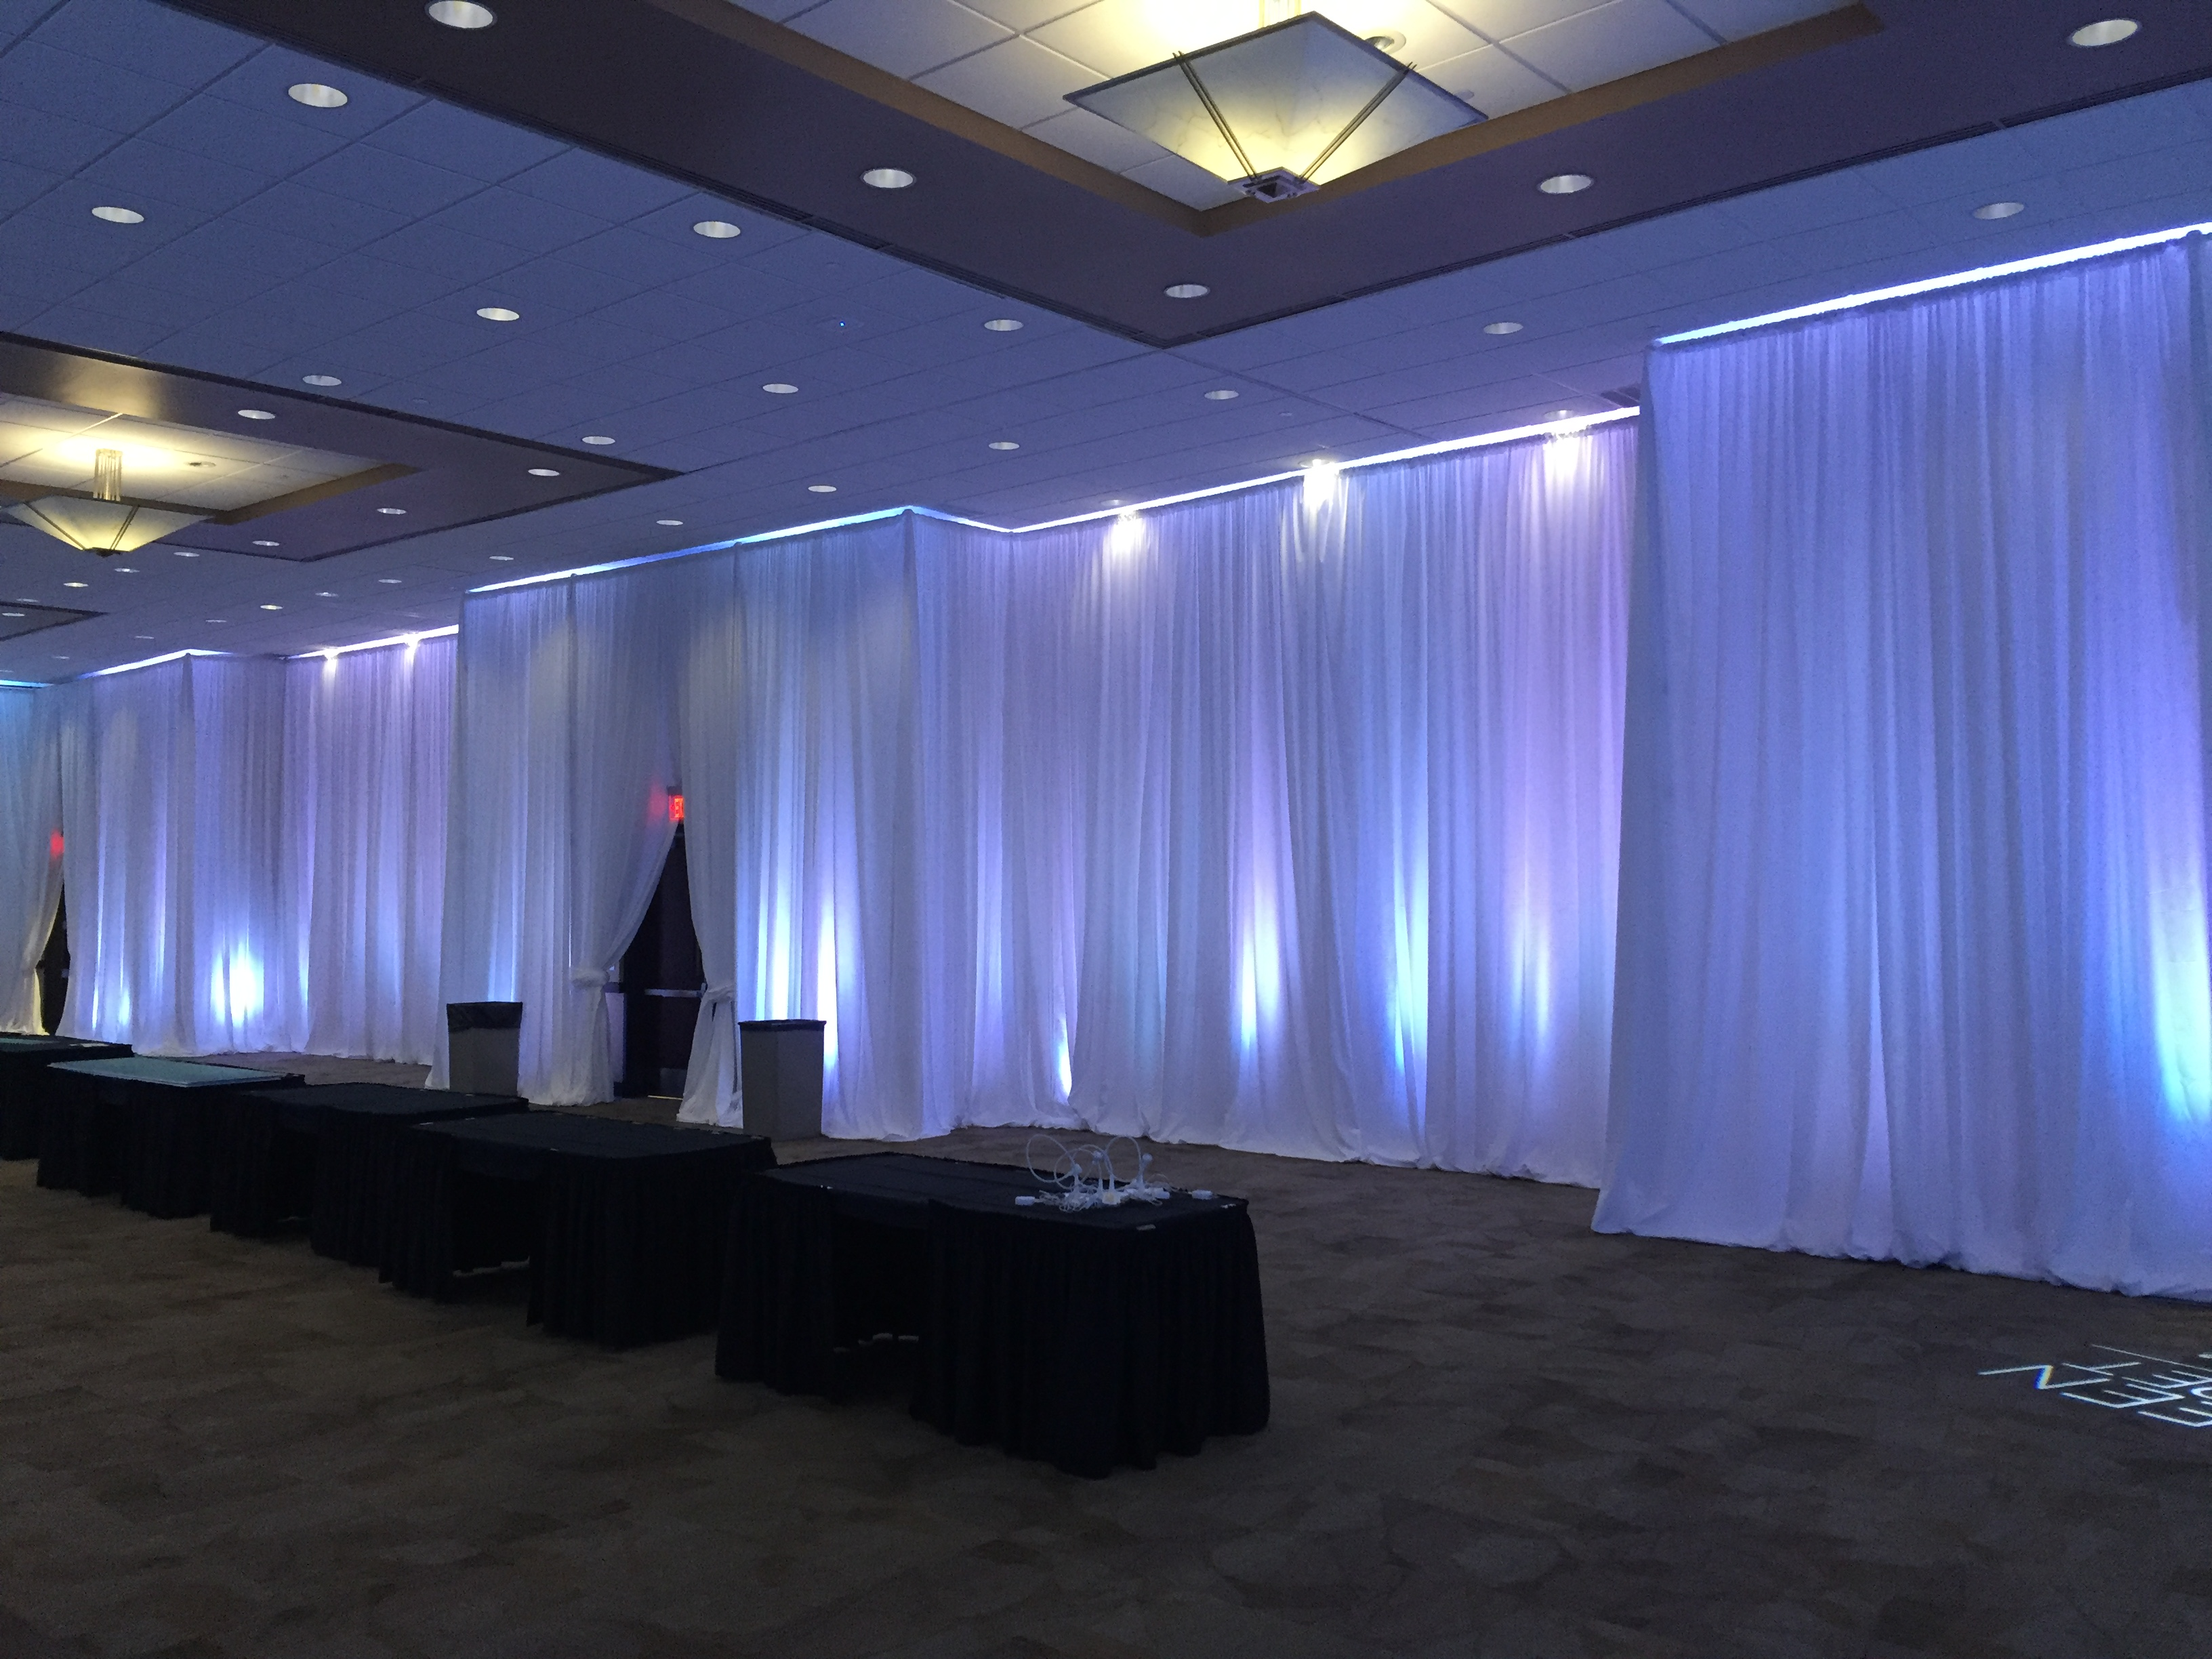 training to need system tn pro t event how for save destiny don without here ceiling the fabric events hang ring you draping kit voile drapingwith drapes a s money church columbia